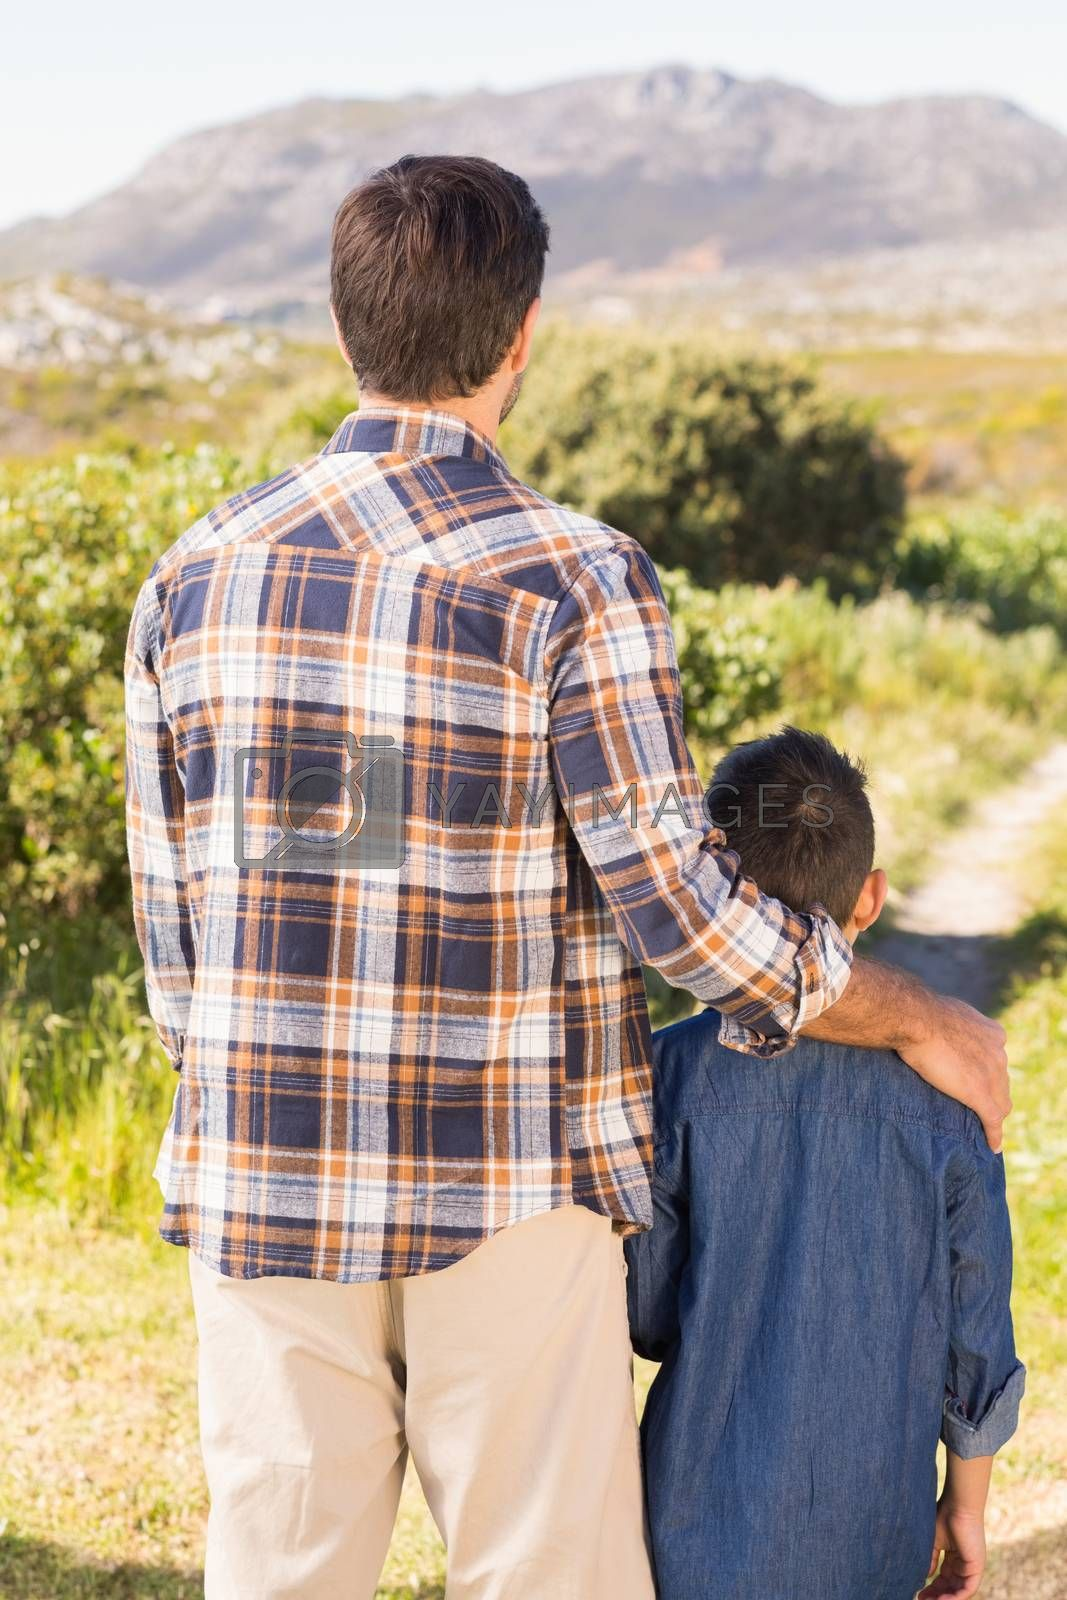 Father and son on a hike together by Wavebreakmedia